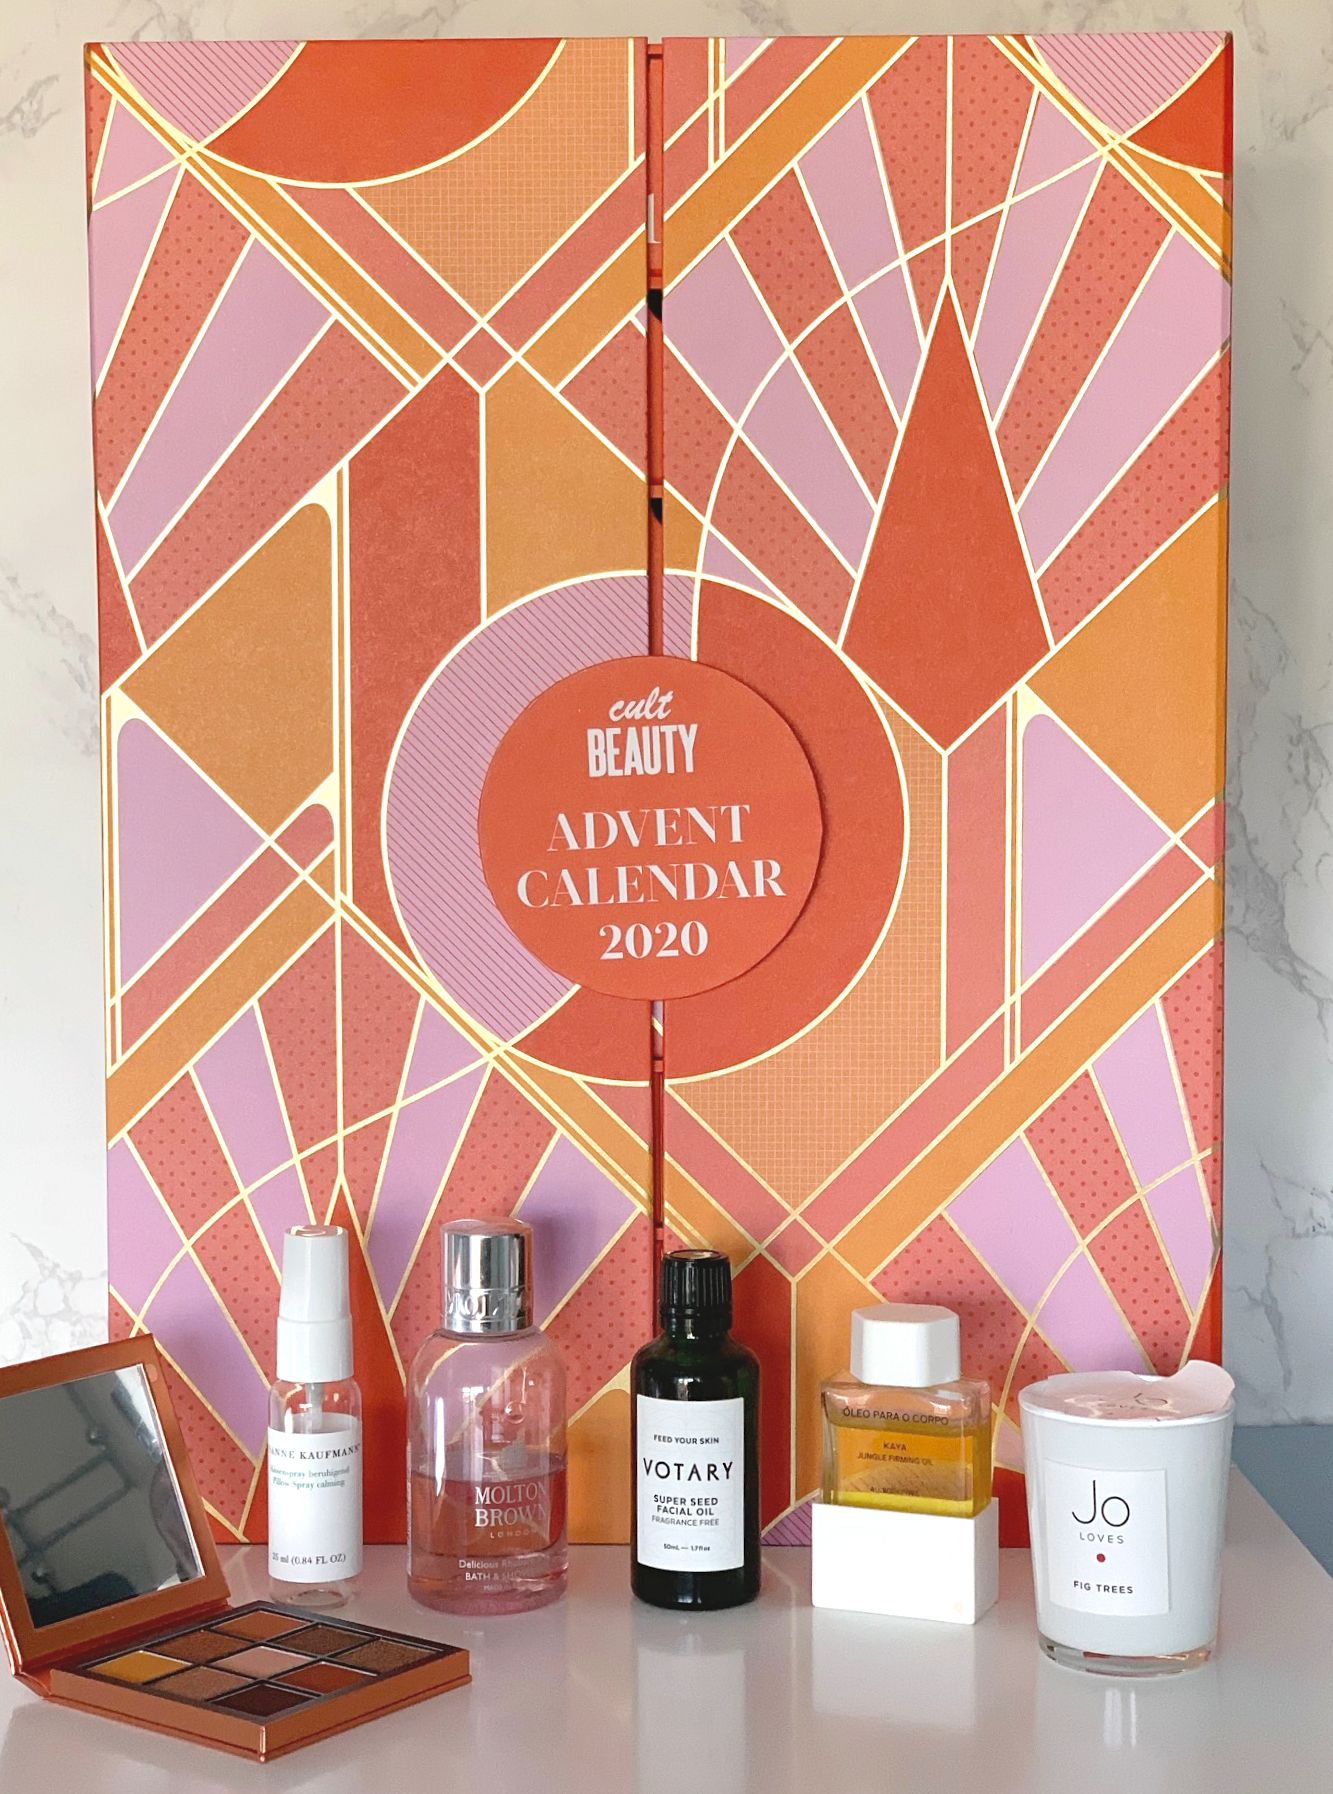 My six favourite products from the Cult Beauty Advent Calendar 2020